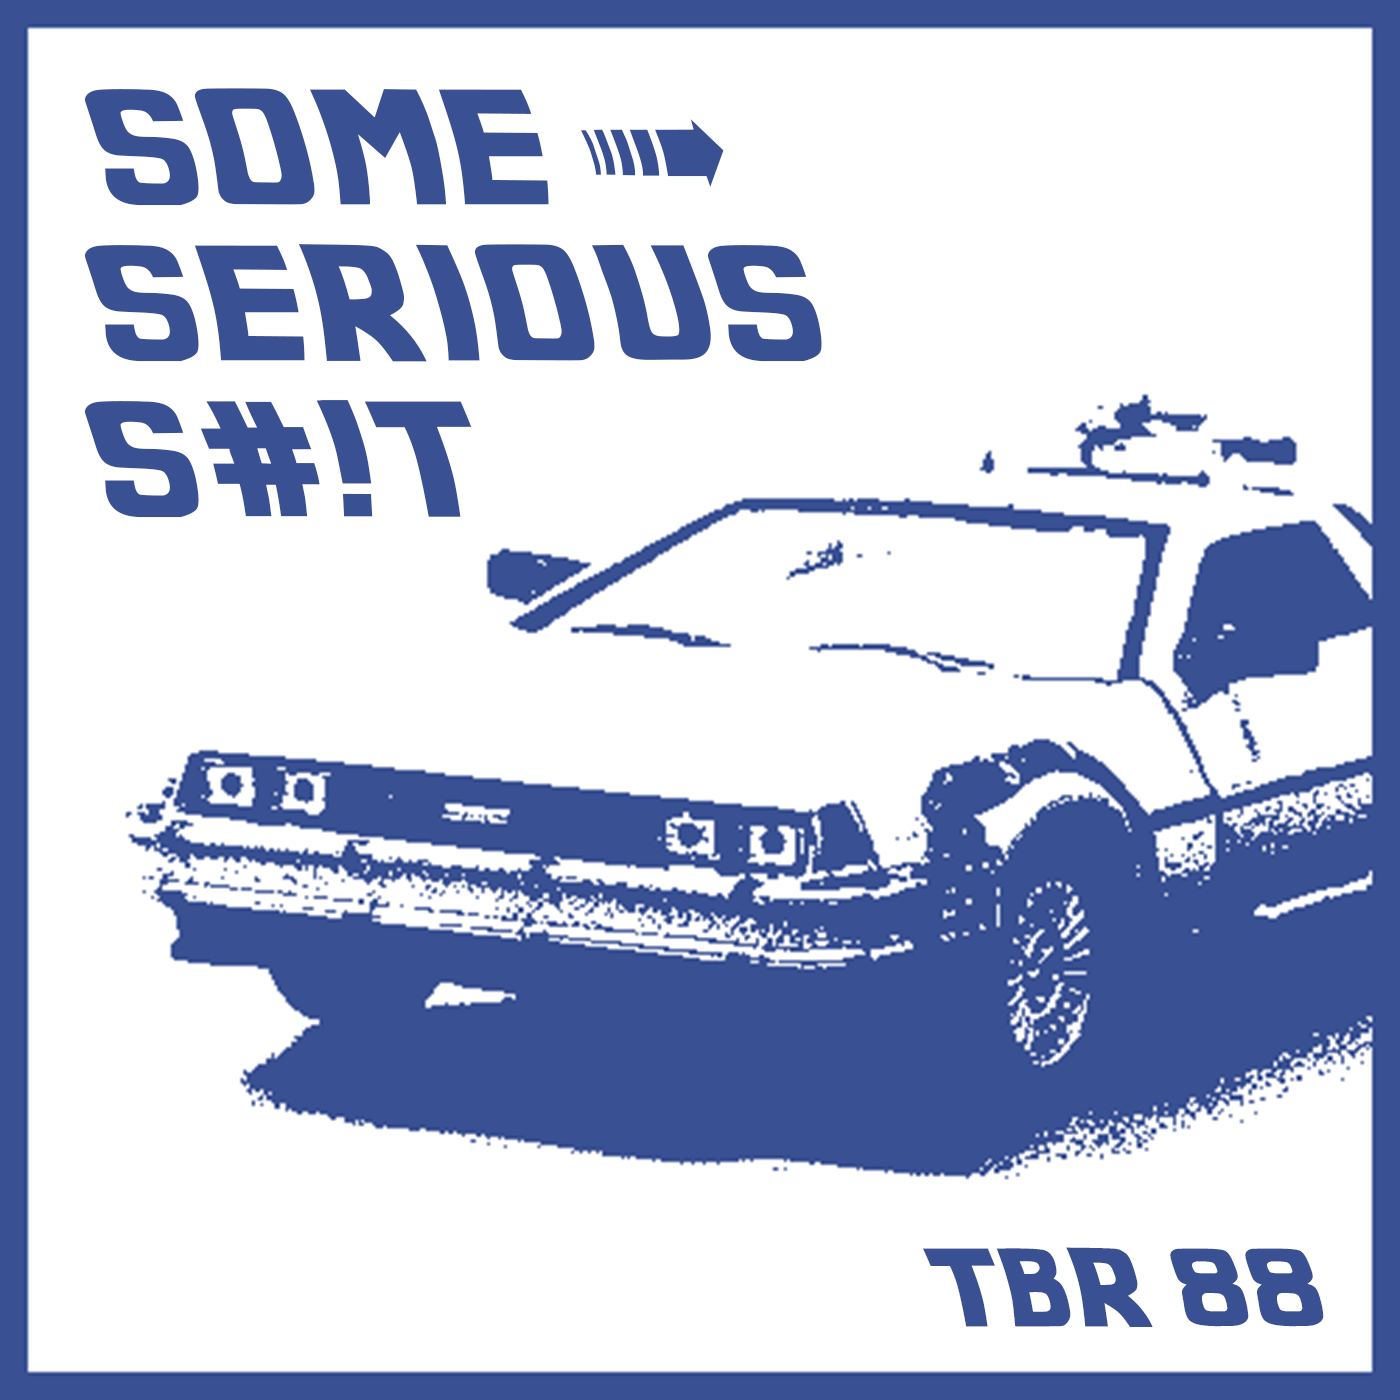 Episode 88 - Some Serious S#!t